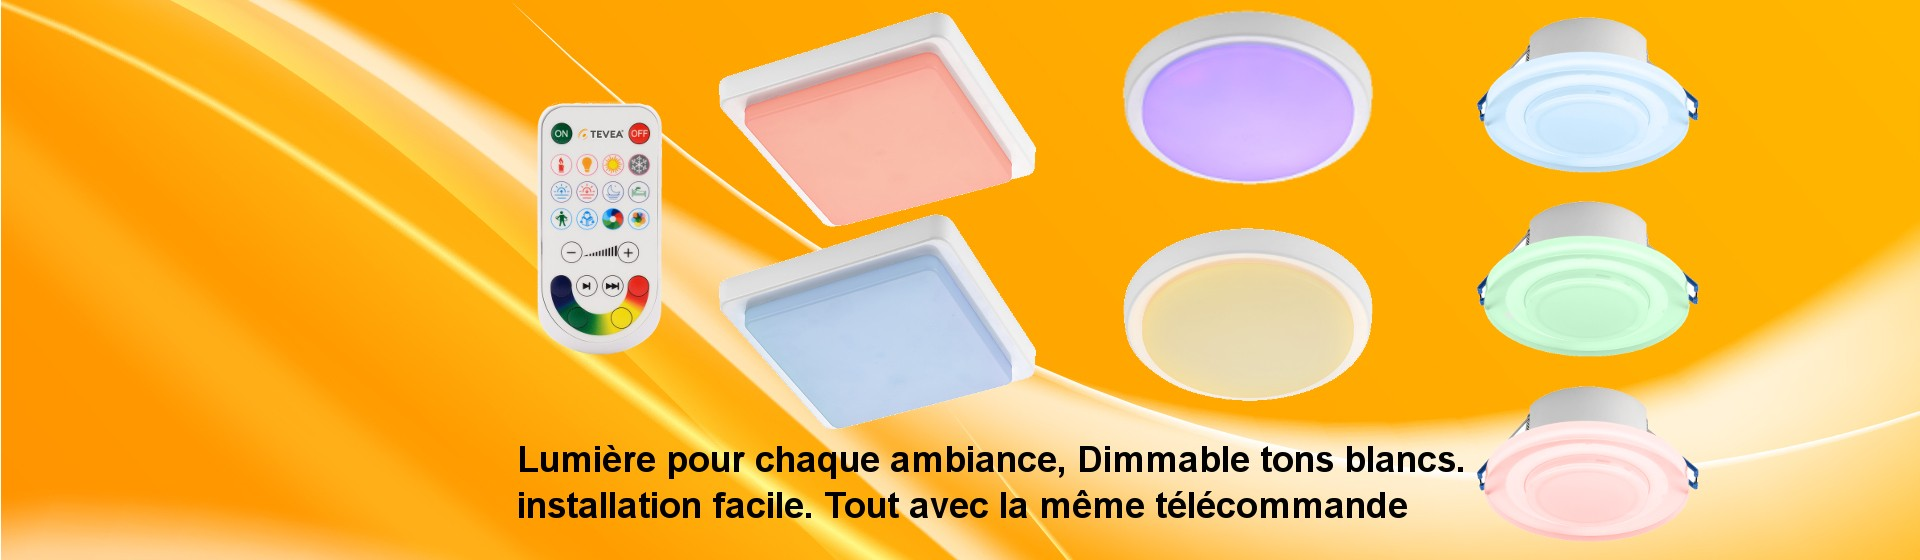 LED Eclairage Dimmable